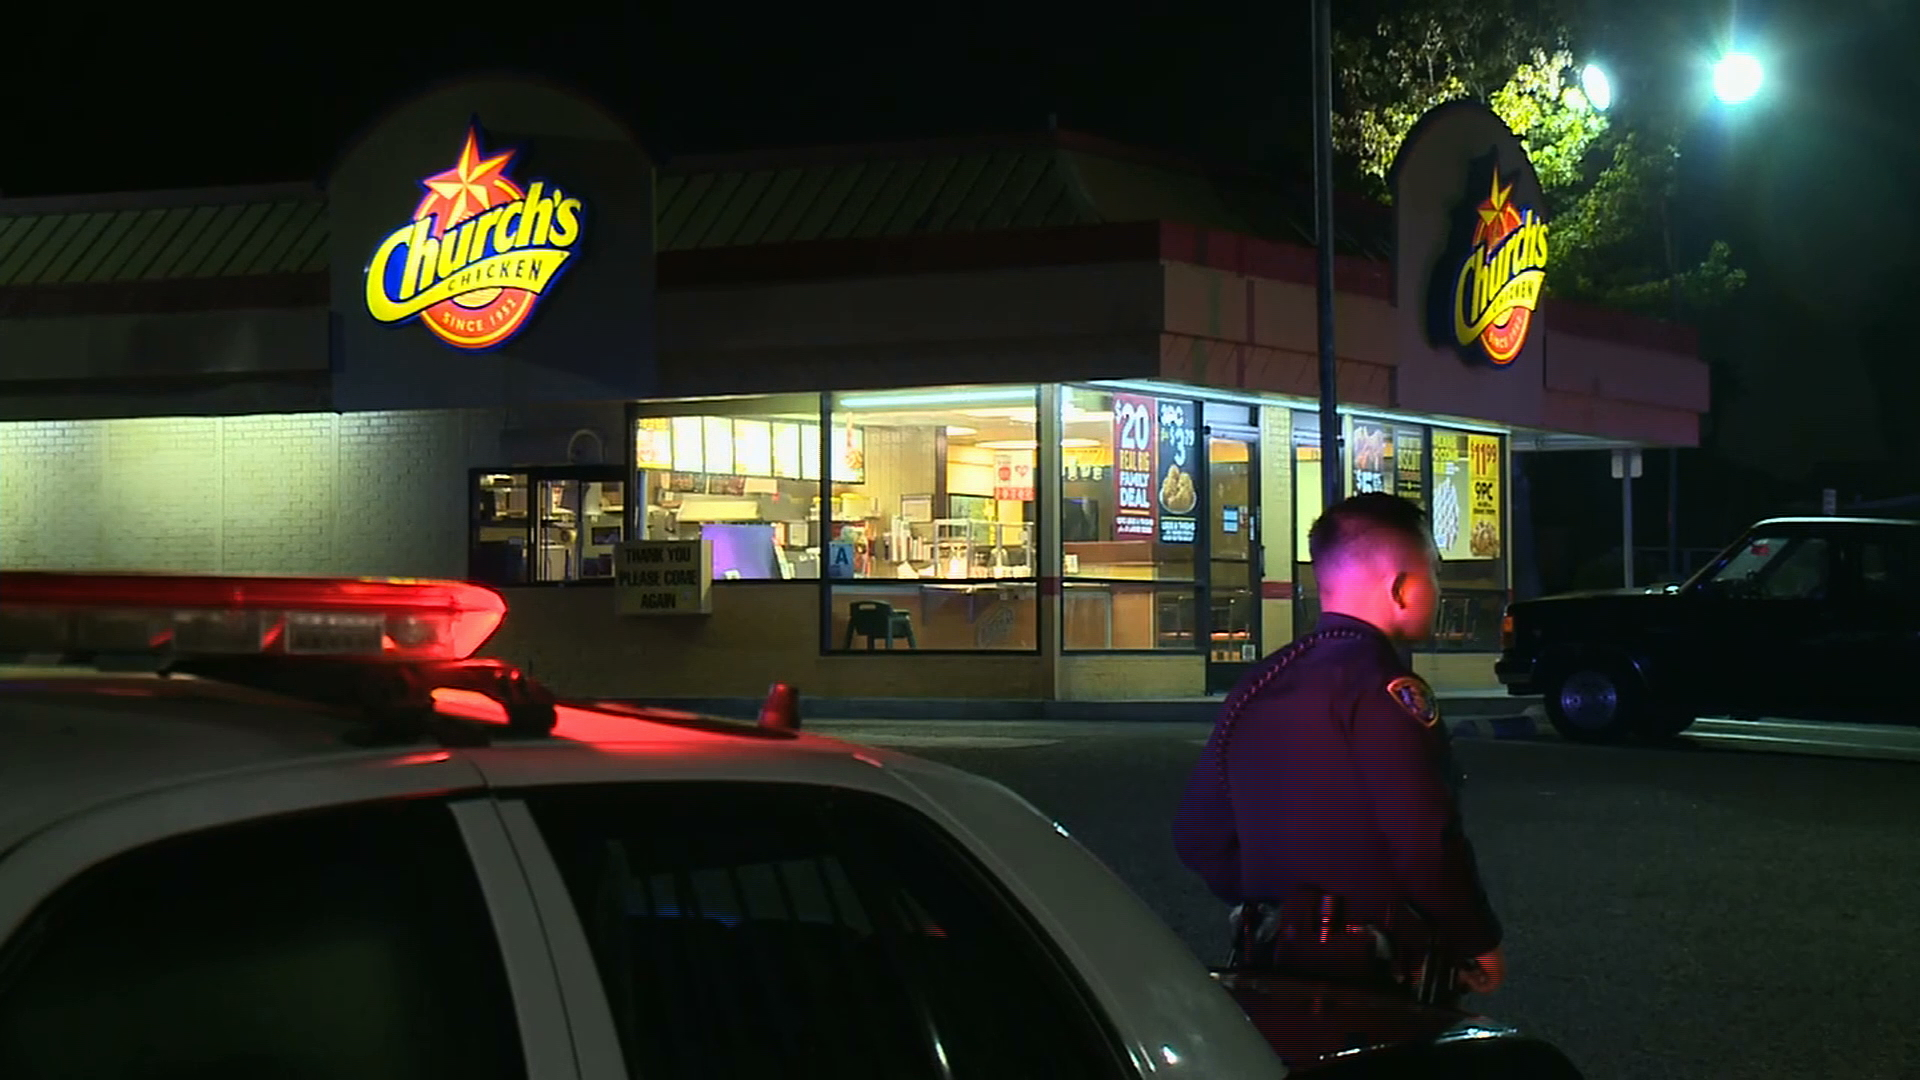 Police respond after a fatal shooting at a Church's Chicken in Otay Mesa on Nov. 6, 2019. (Credit: KSWB)